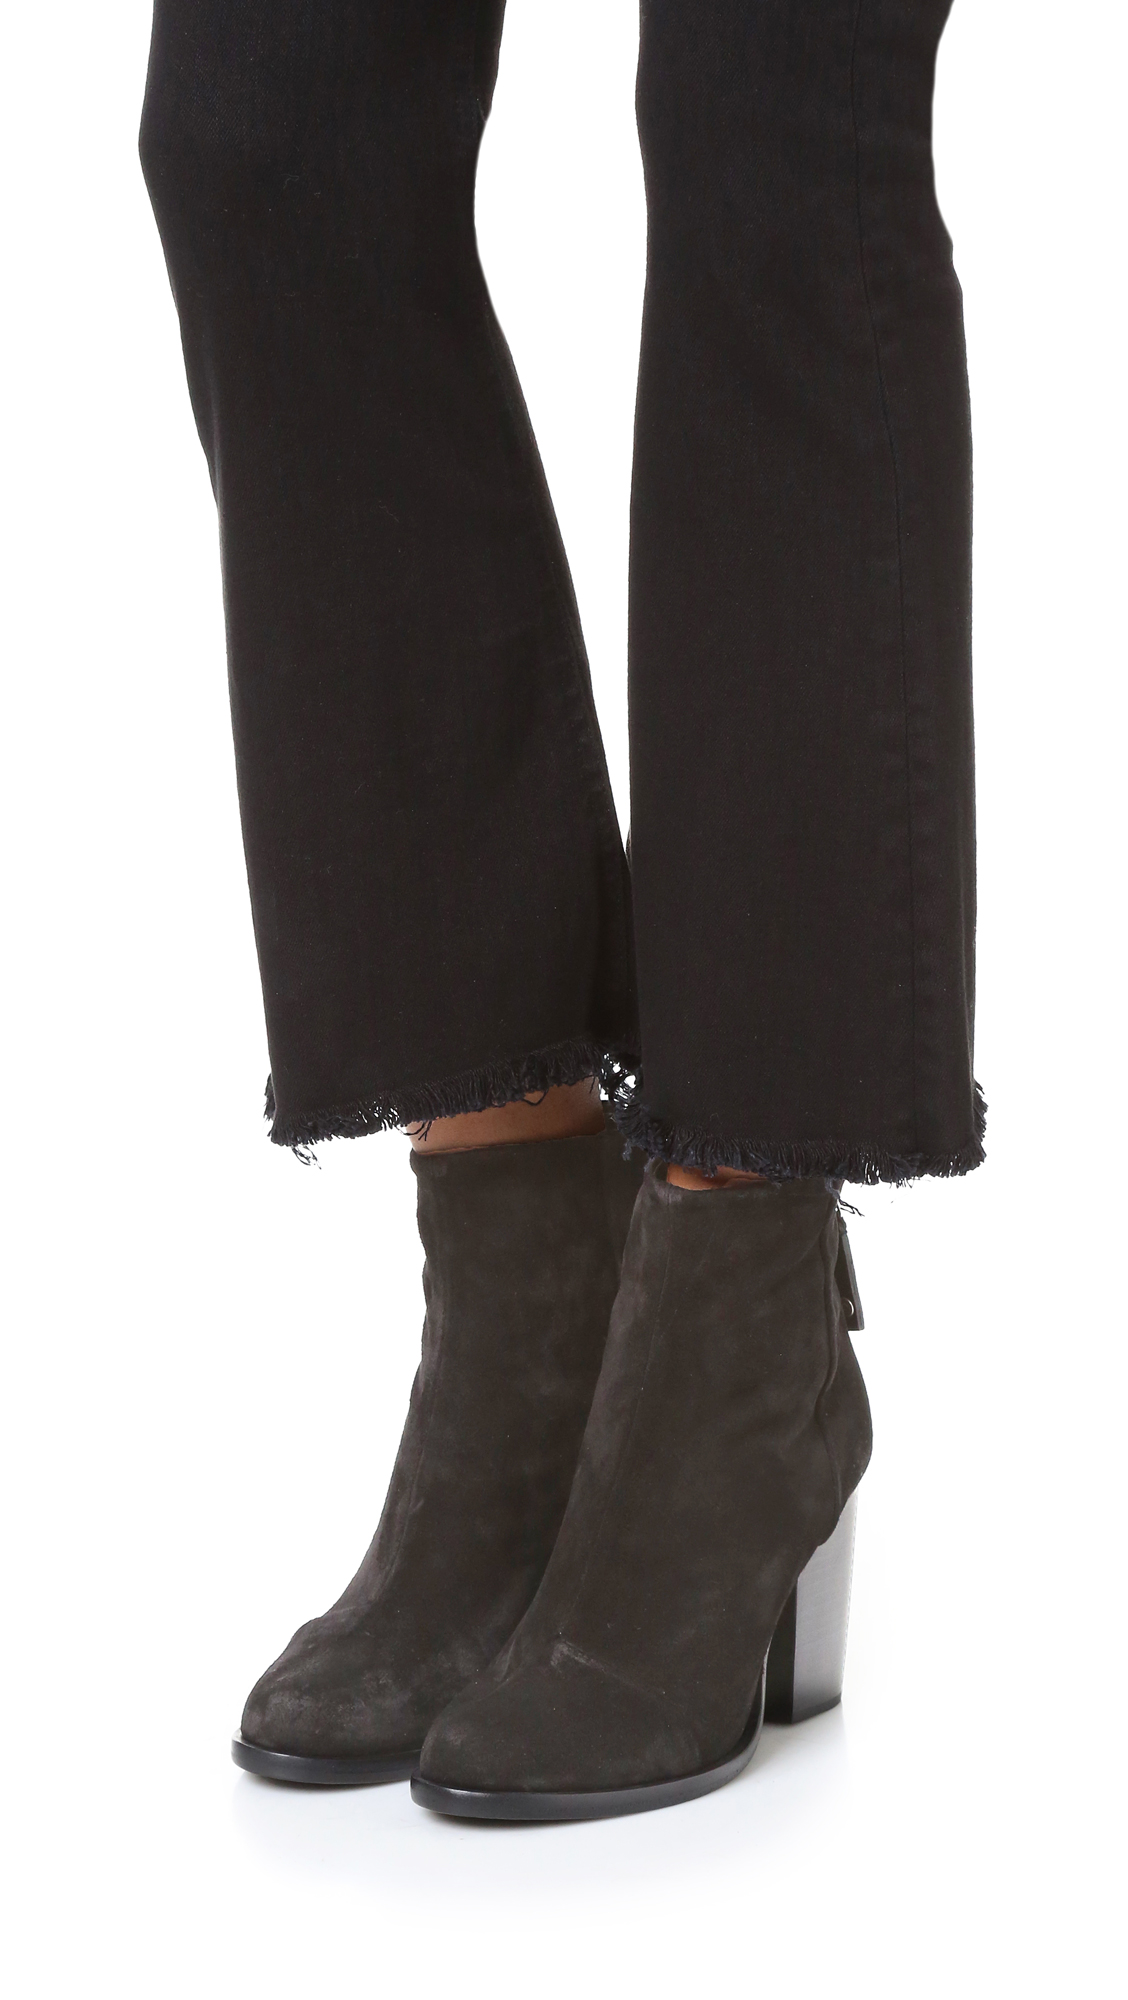 Rag and Bone Rag & Bone Suede Ashby Boots kqPO2Zlr9